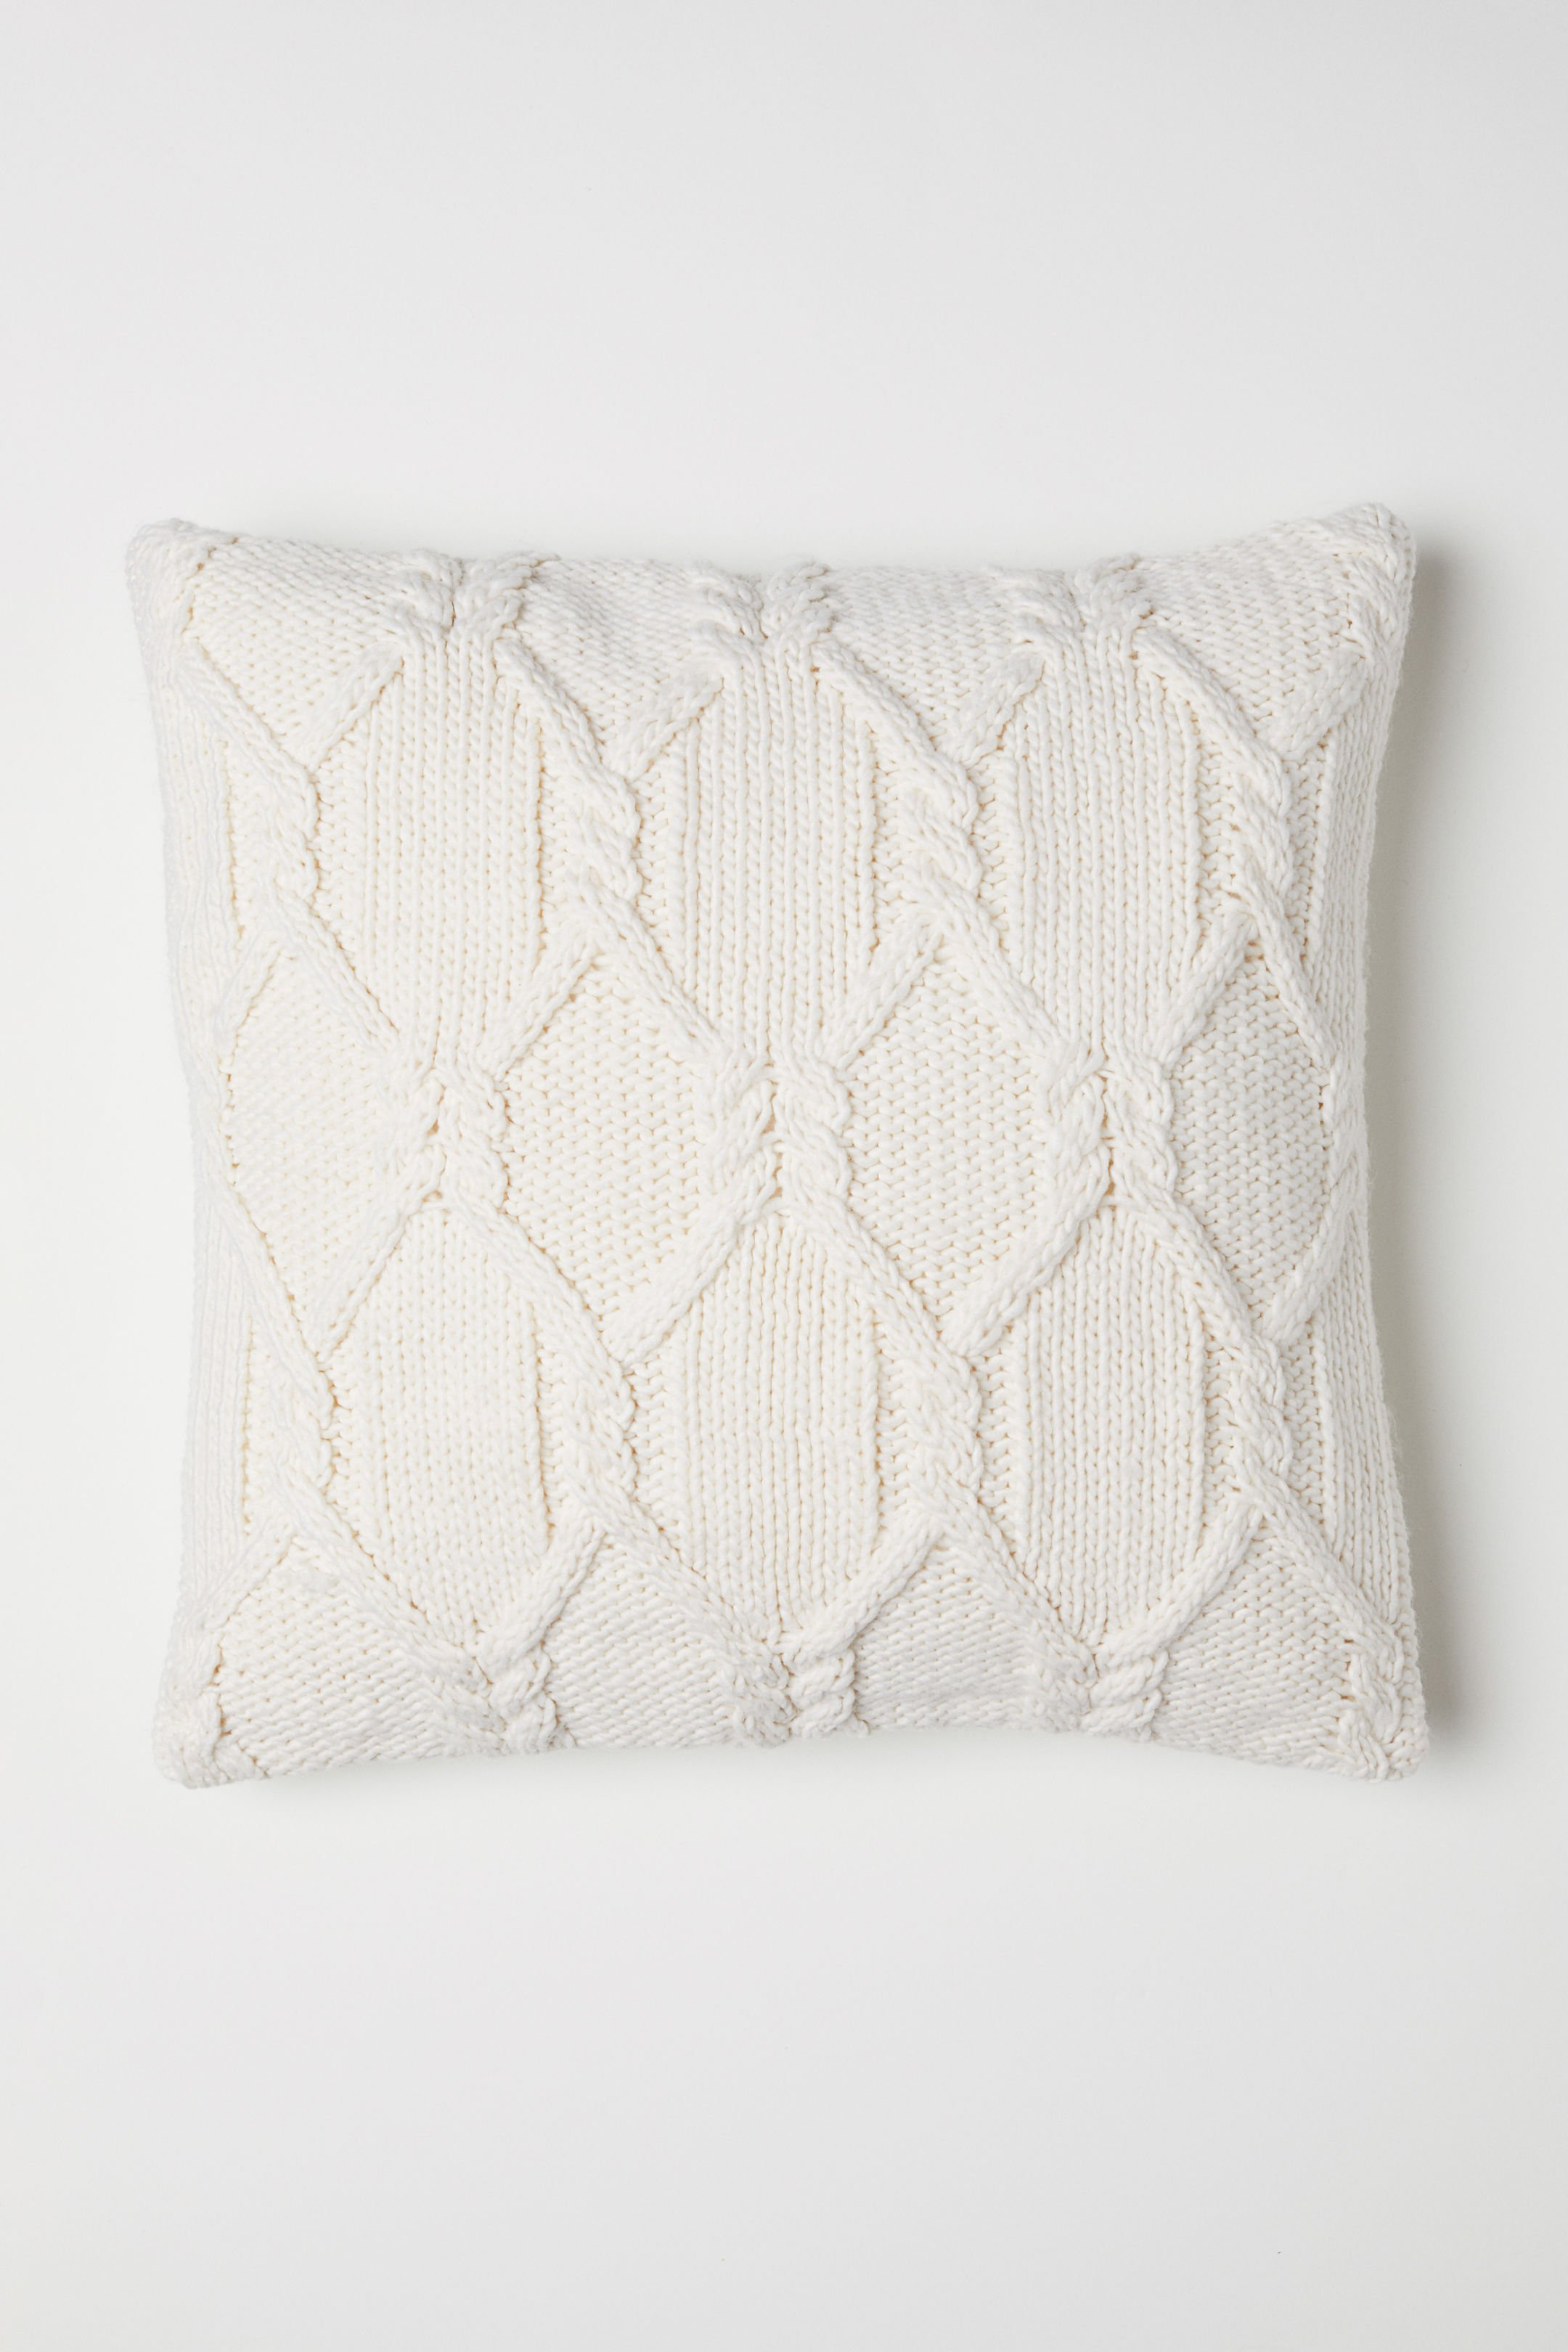 Knitting Pattern For Cushion Cover With Cables Shop Cable Knit Cushion Cover Online Hm Uae